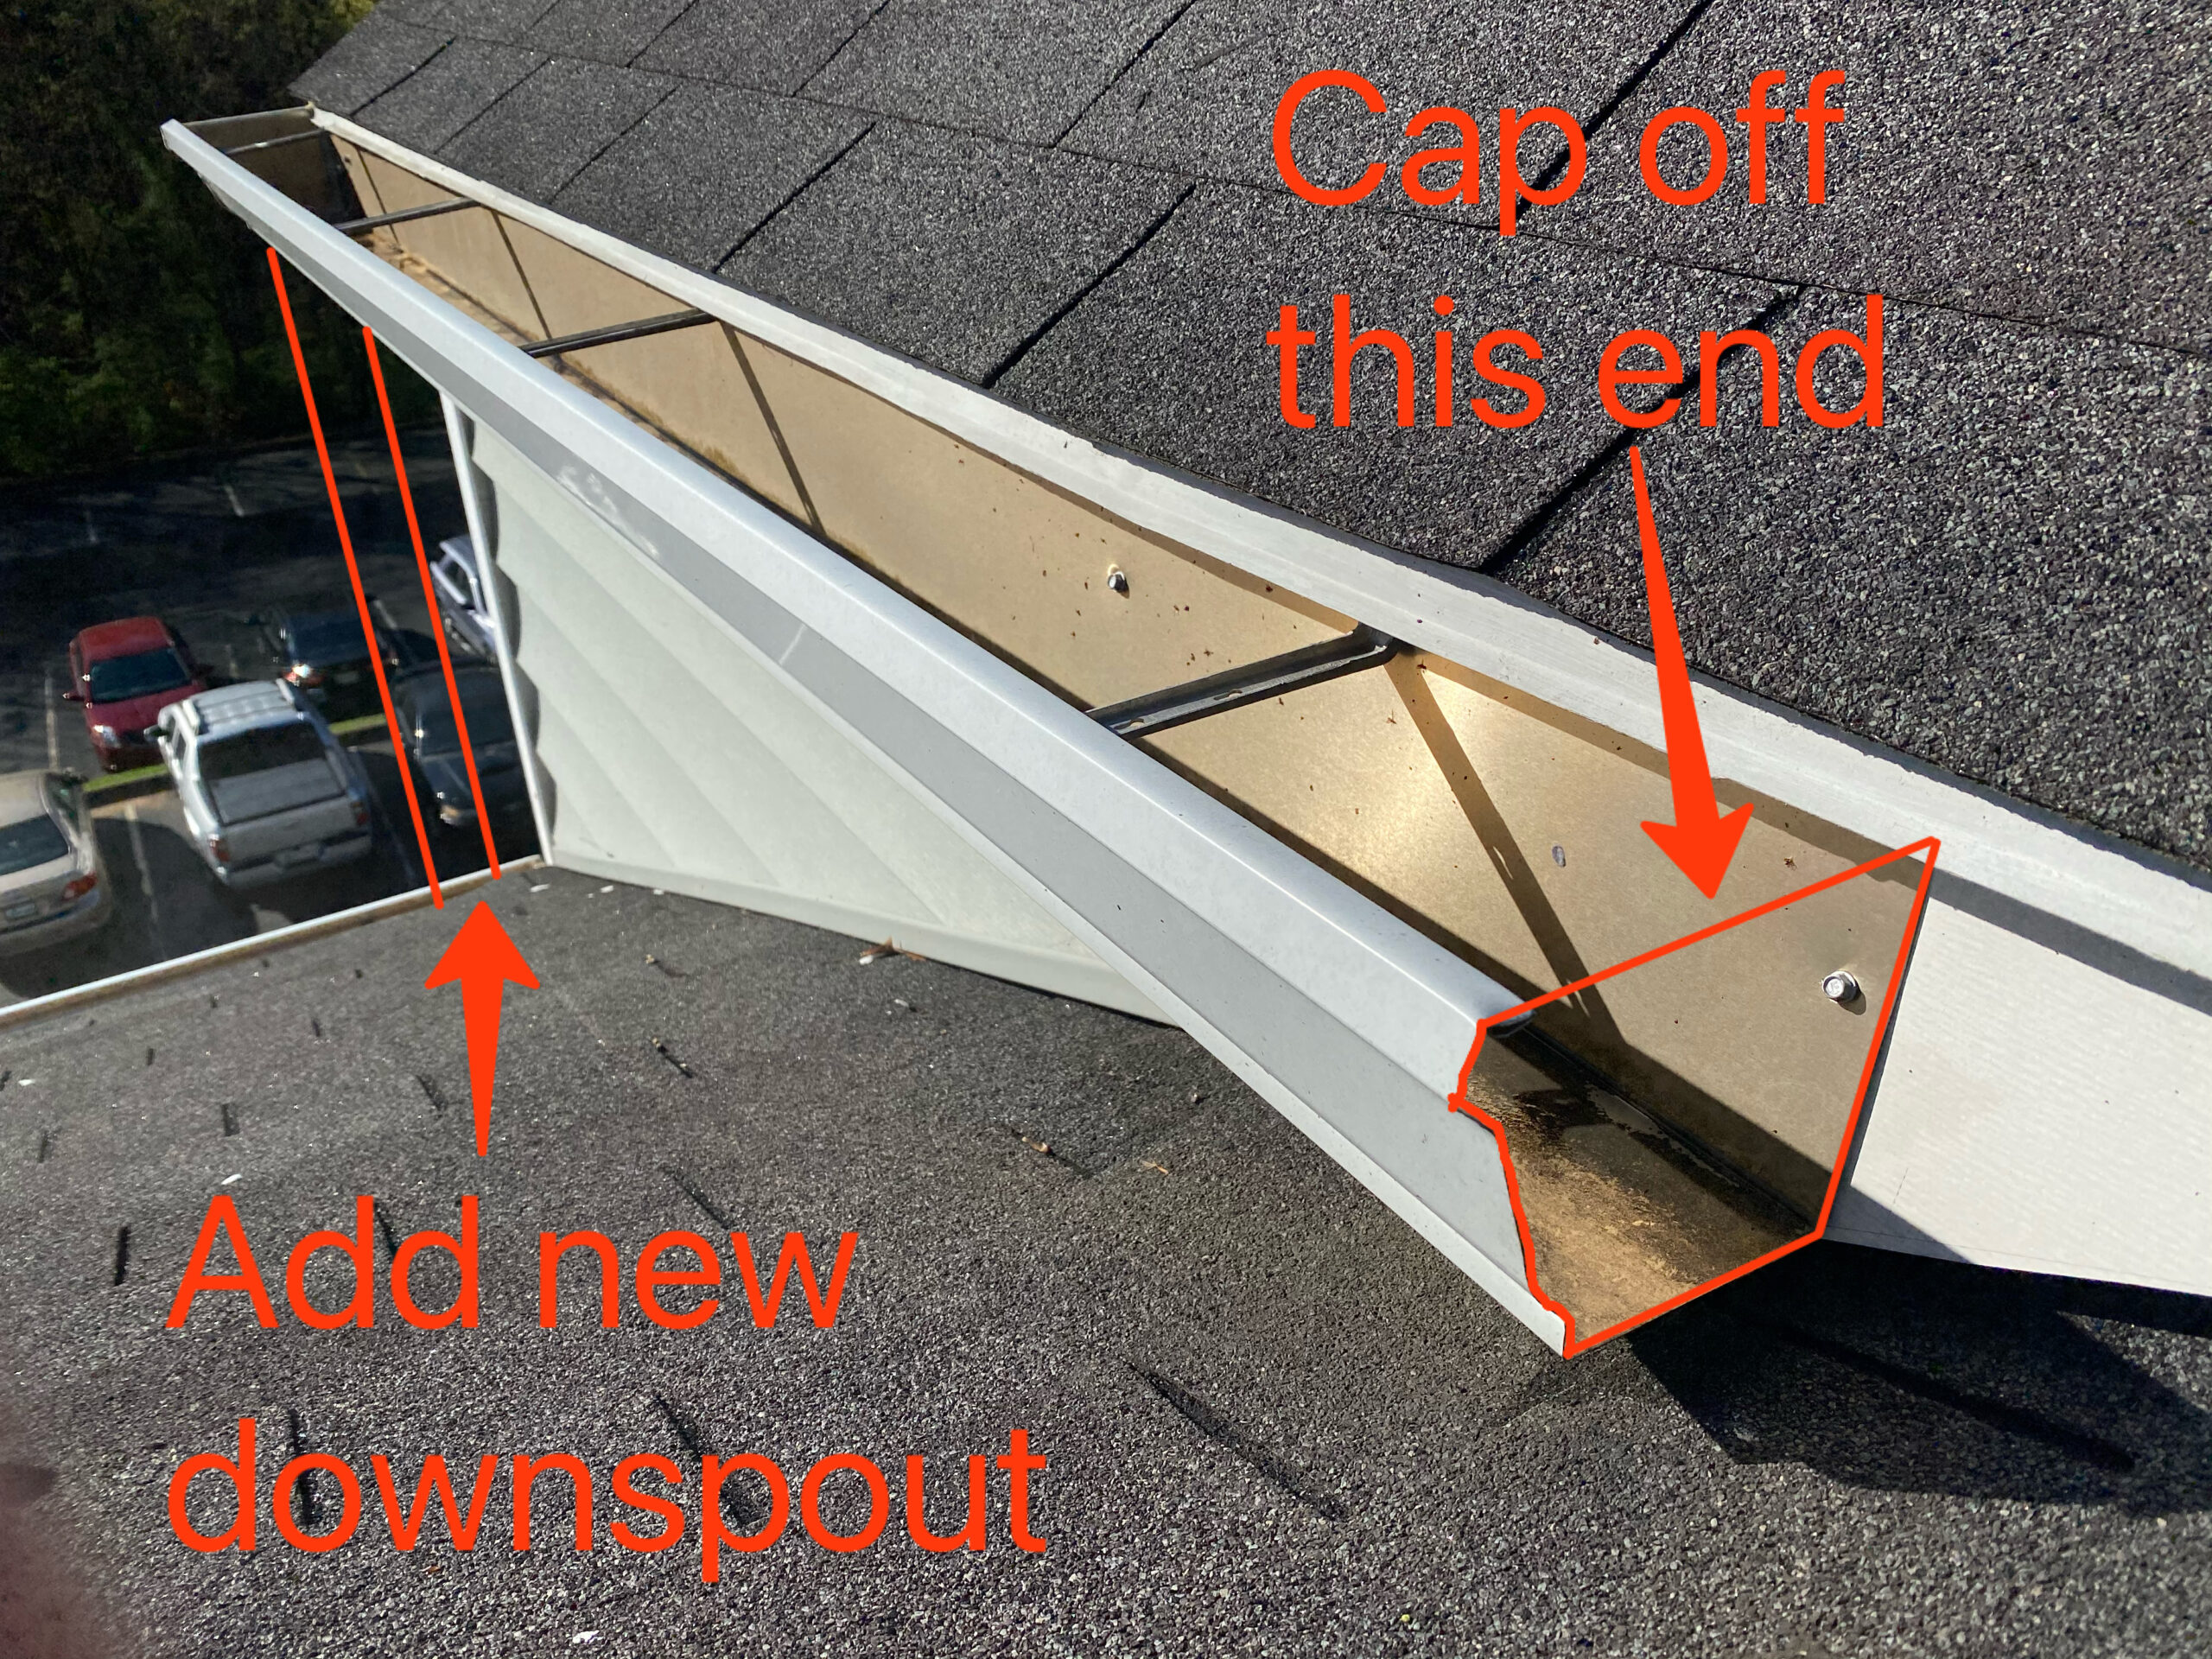 This is a picture of a commercial roofer pier you can see clearly there is a gutter and roof leak.